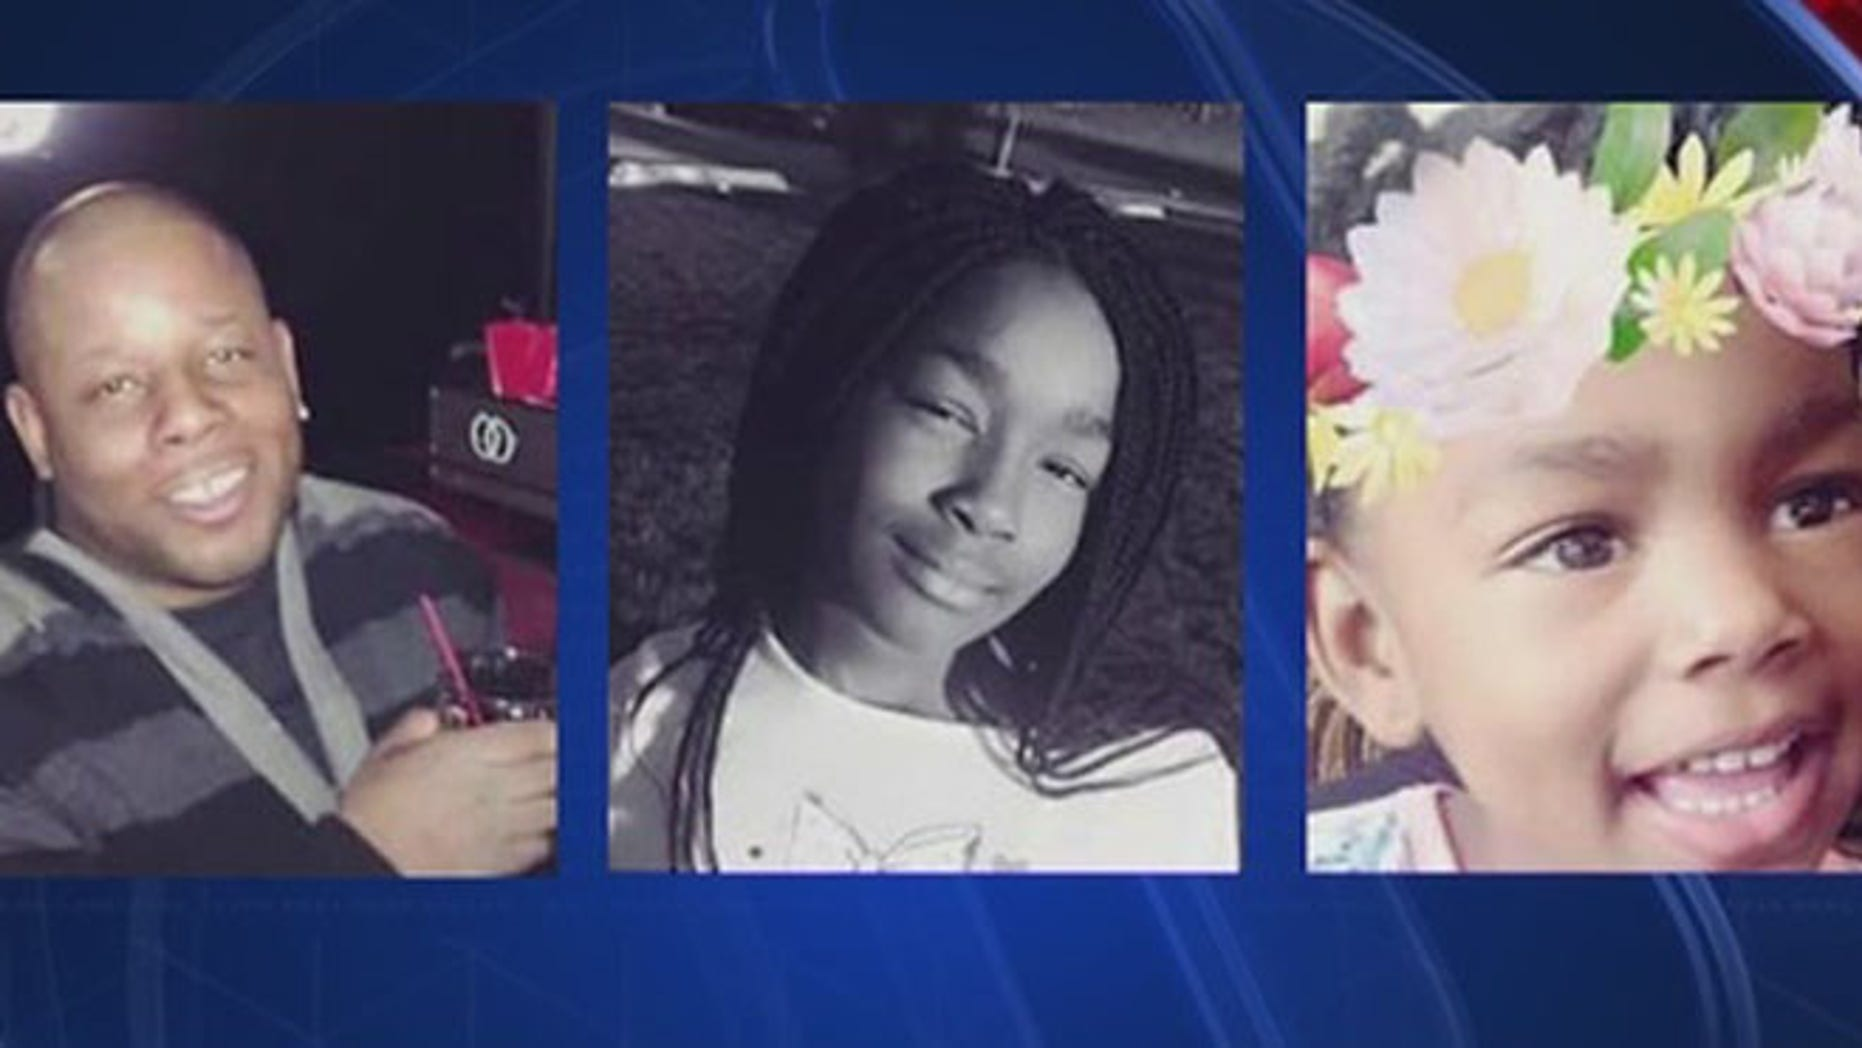 Dionus Neely, 39, and his two children, Elle, 10, and India, 3, were killed early Saturday. (Fox 32 Chicago)